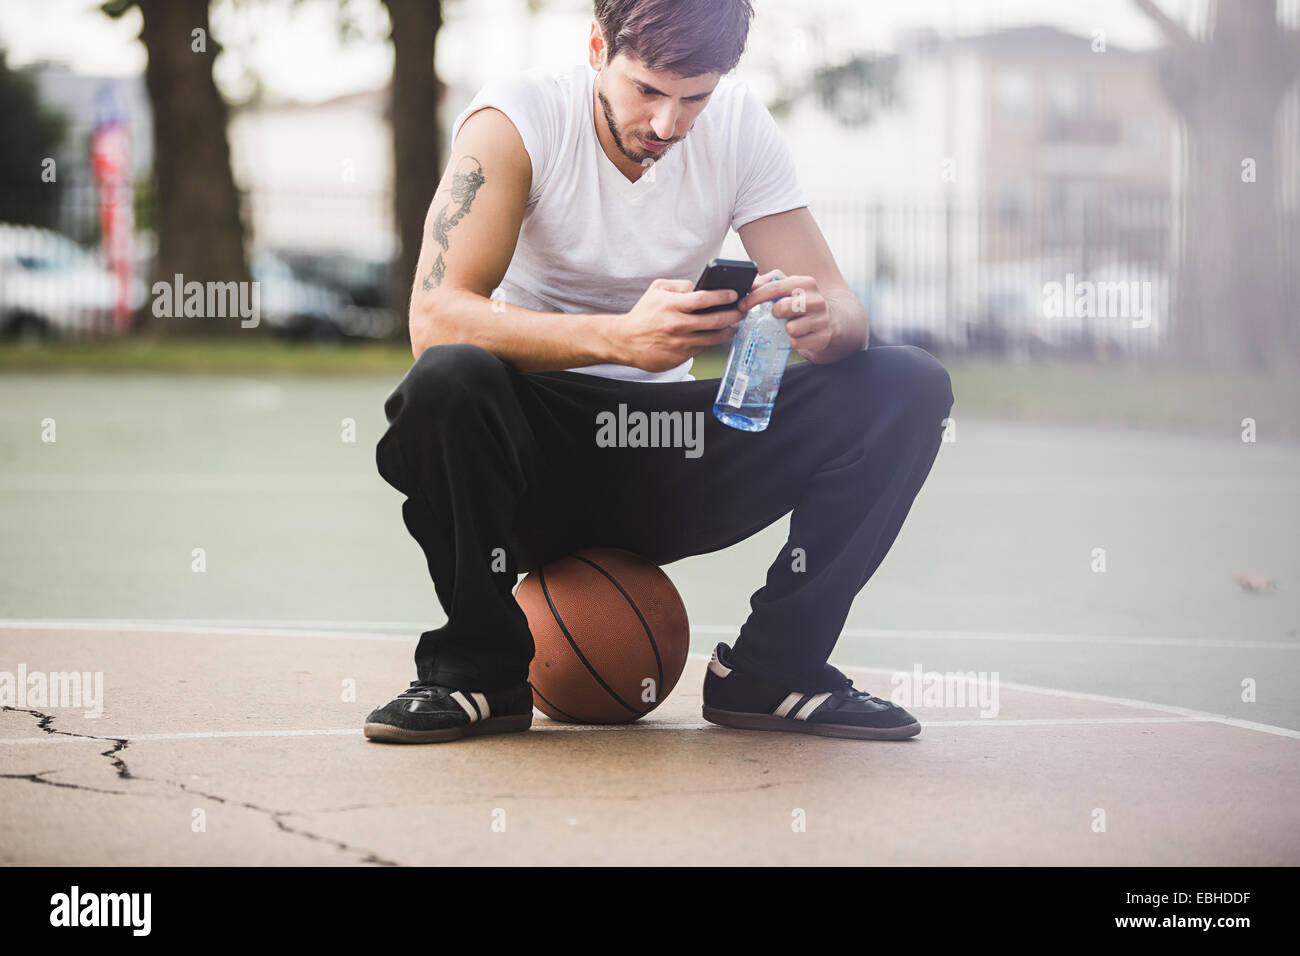 Young male basketball sitting on ball texting on smartphone - Stock Image